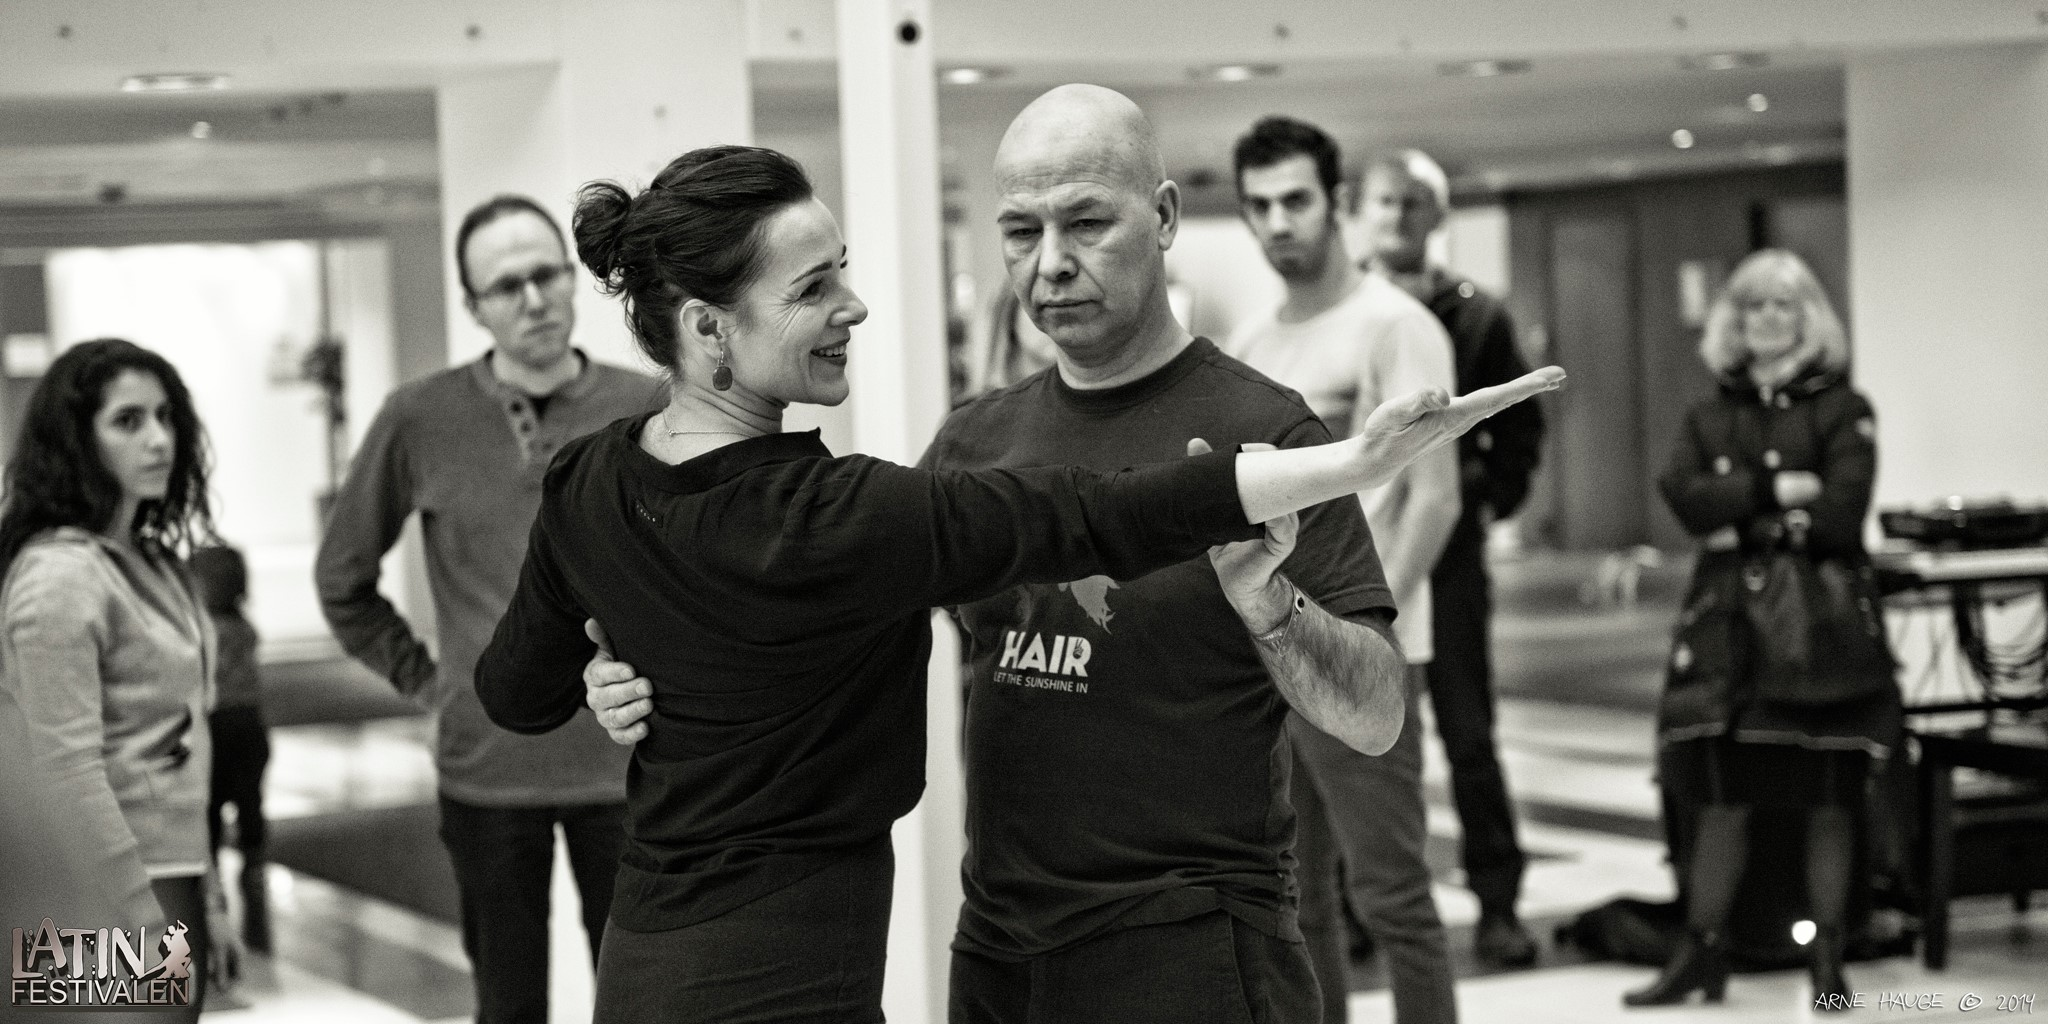 Inguna, with husband, instructing at the Latin Festival in Trondheim, 2014